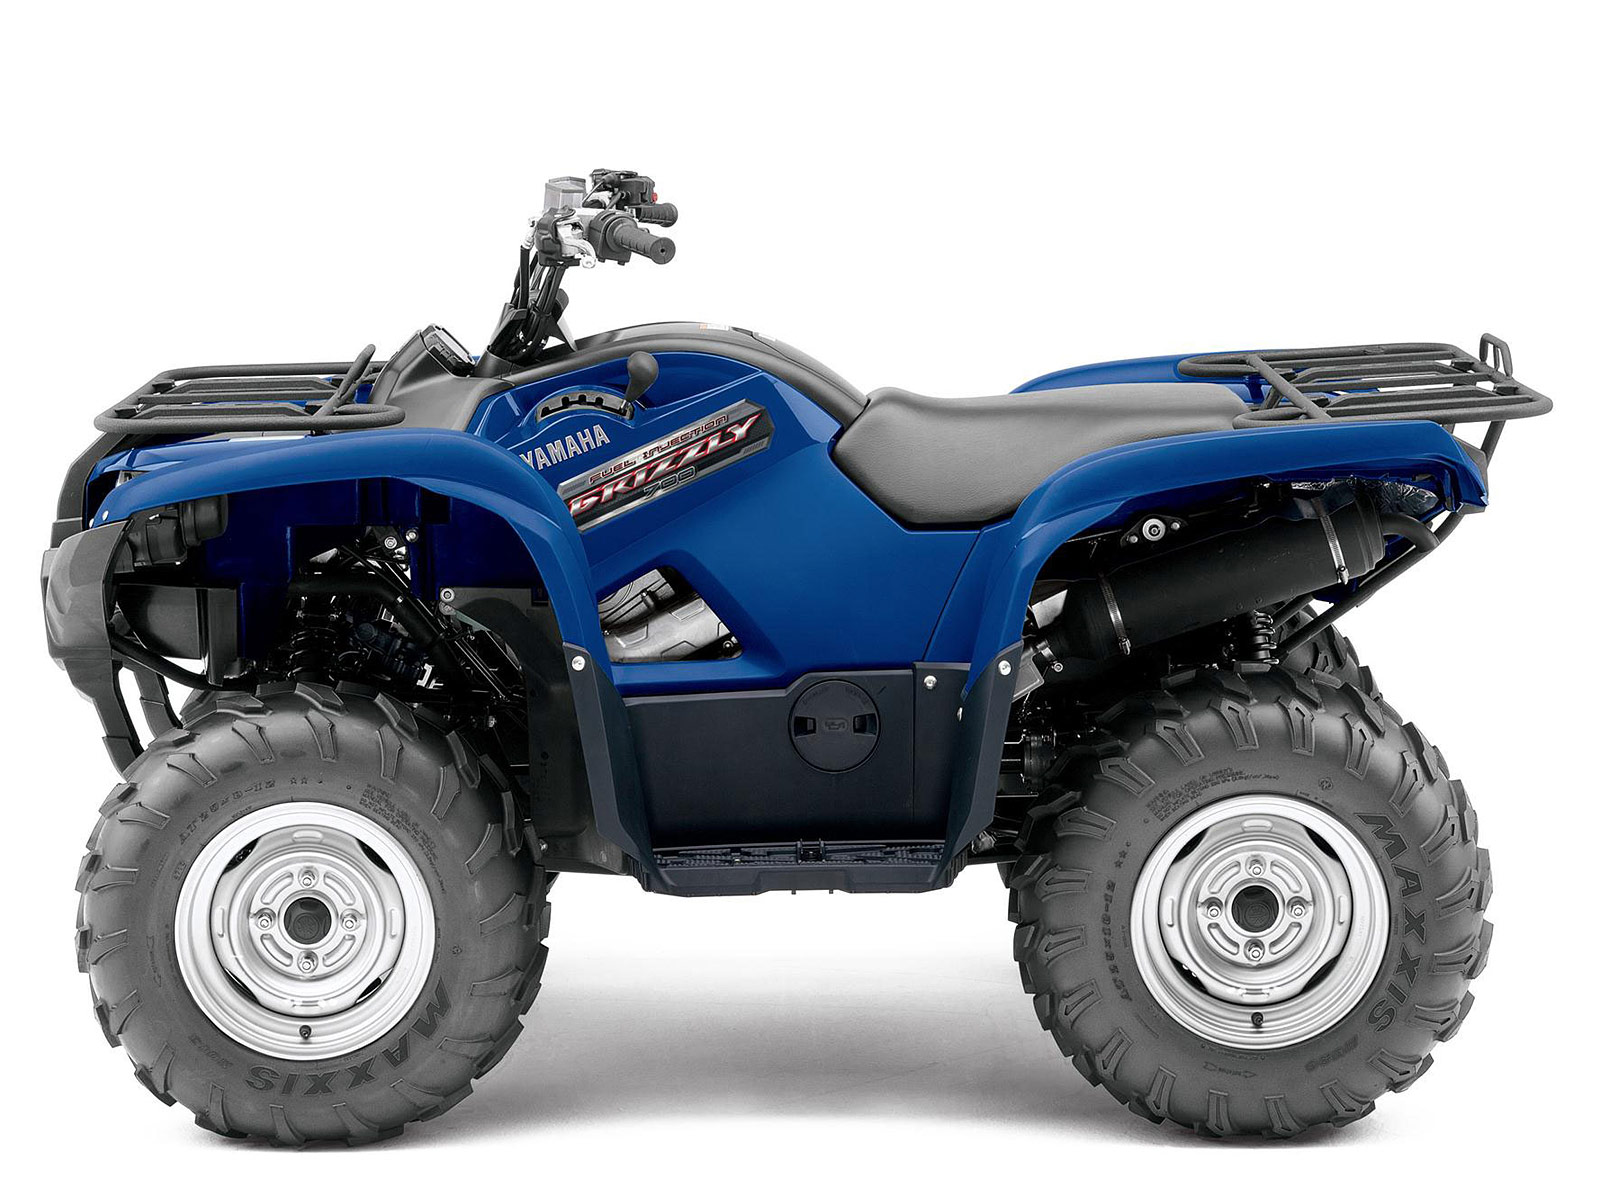 hight resolution of 2013 grizzly 700 fi auto 4x4 yamaha atv pictures 480x360 pixels